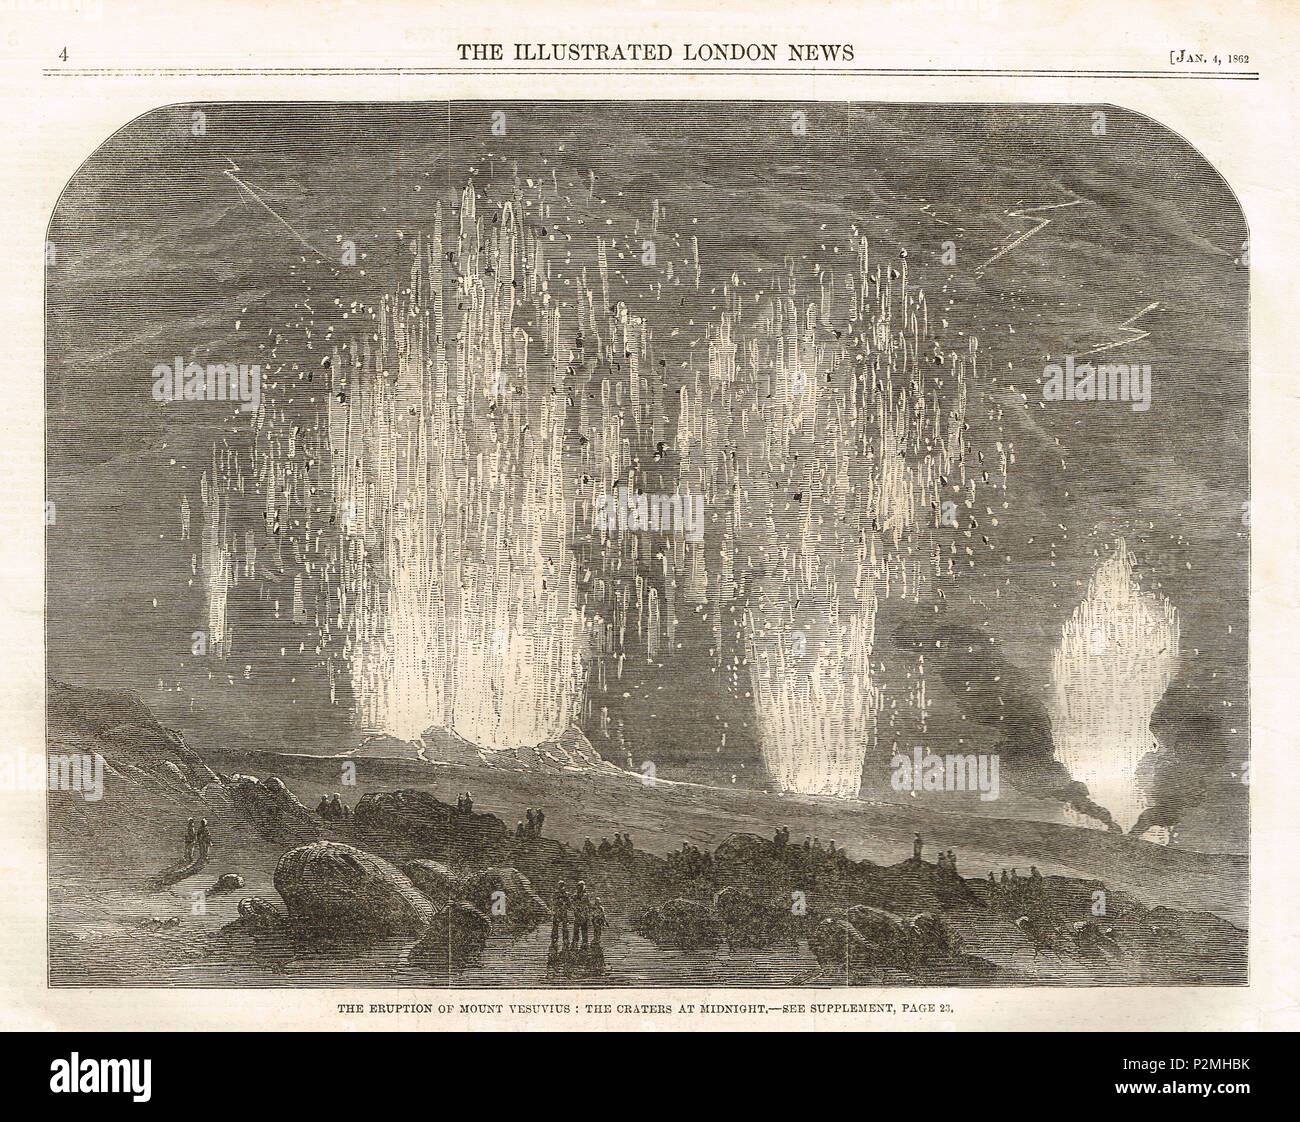 Eruption of Mt Vesuvius, December 1861 - Stock Image